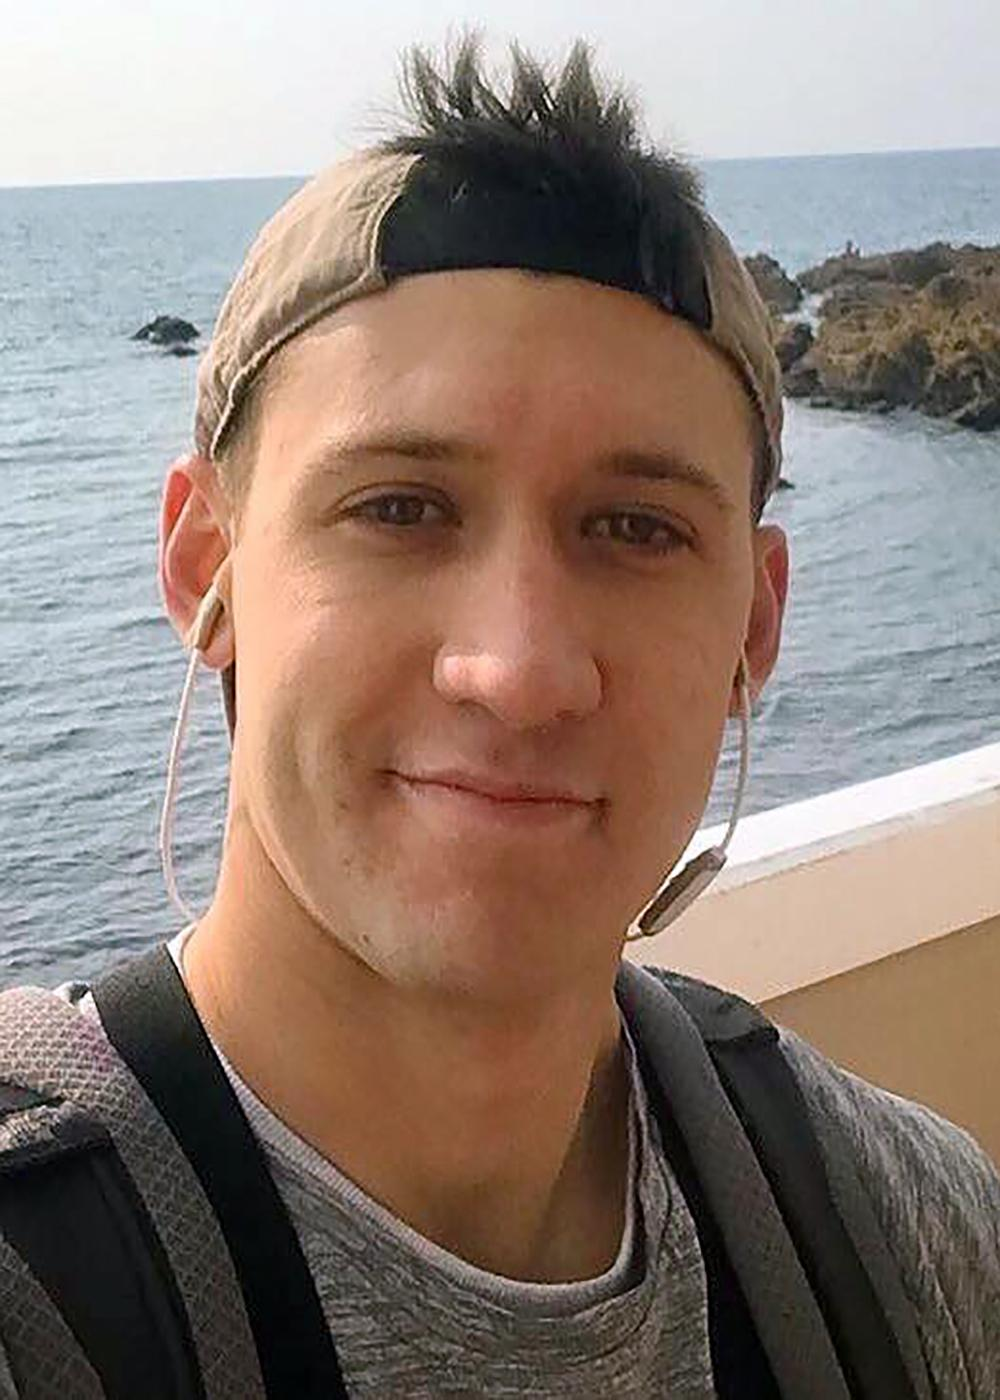 U.S. Navy file photo of Electronics Technician 3rd Class Dustin Louis Doyon, 26, from Suffield, Connecticut, who was stationed aboard USS John S. McCain (DDG 56) when it collided with the Liberian-flagged merchant vessel Alnic MC, Aug. 21. Doyon was identified as missing on Aug. 24. Navy and Marine Corps divers will continue search and recovery efforts inside flooded compartments in the ship for the missing Sailors.  (U.S. Navy photo/Released)